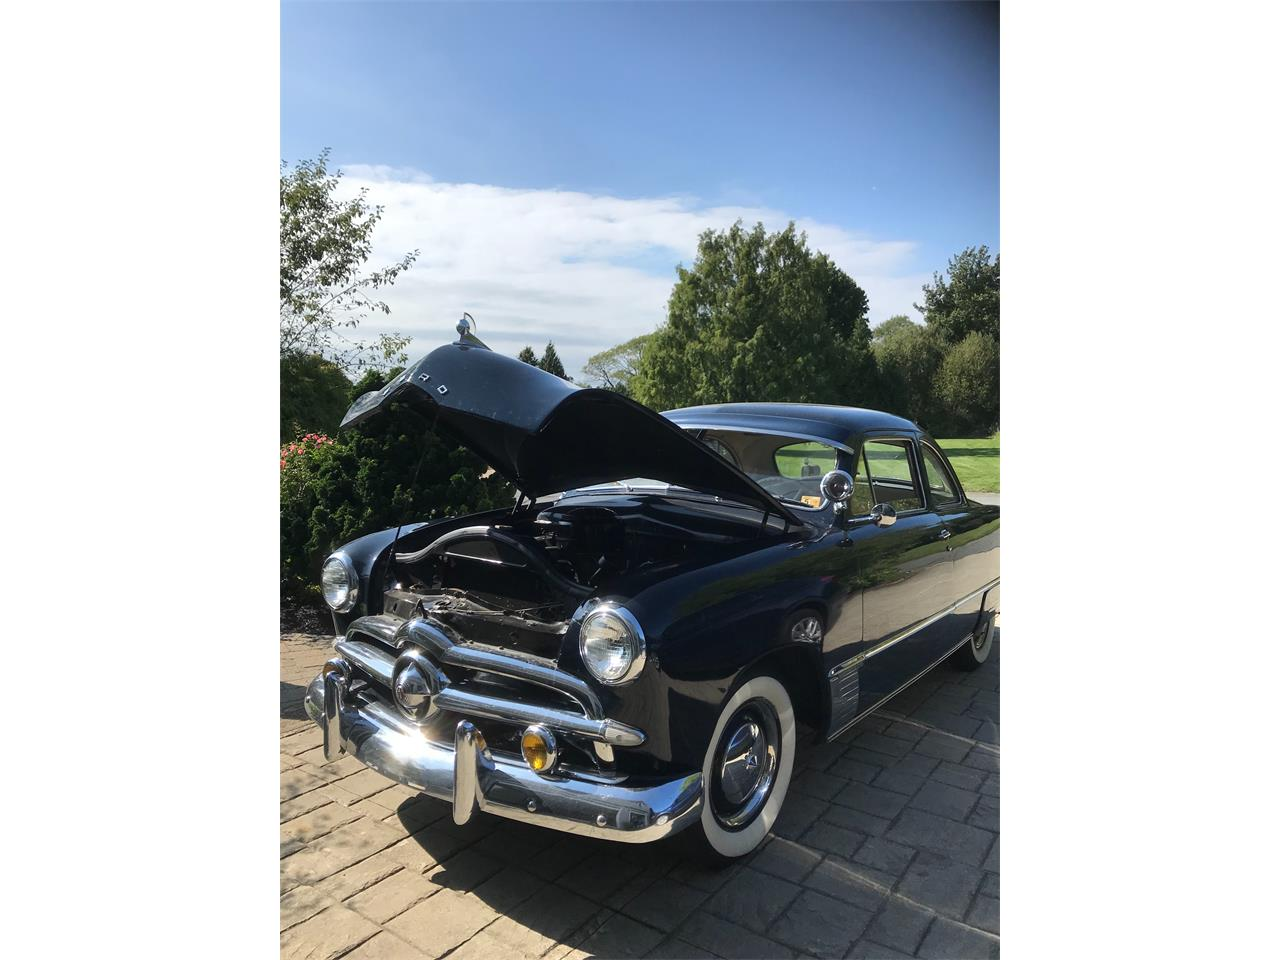 Large Picture of Classic 1949 Ford Coupe located in Tiverton  Rhode Island - $17,500.00 - OHK9